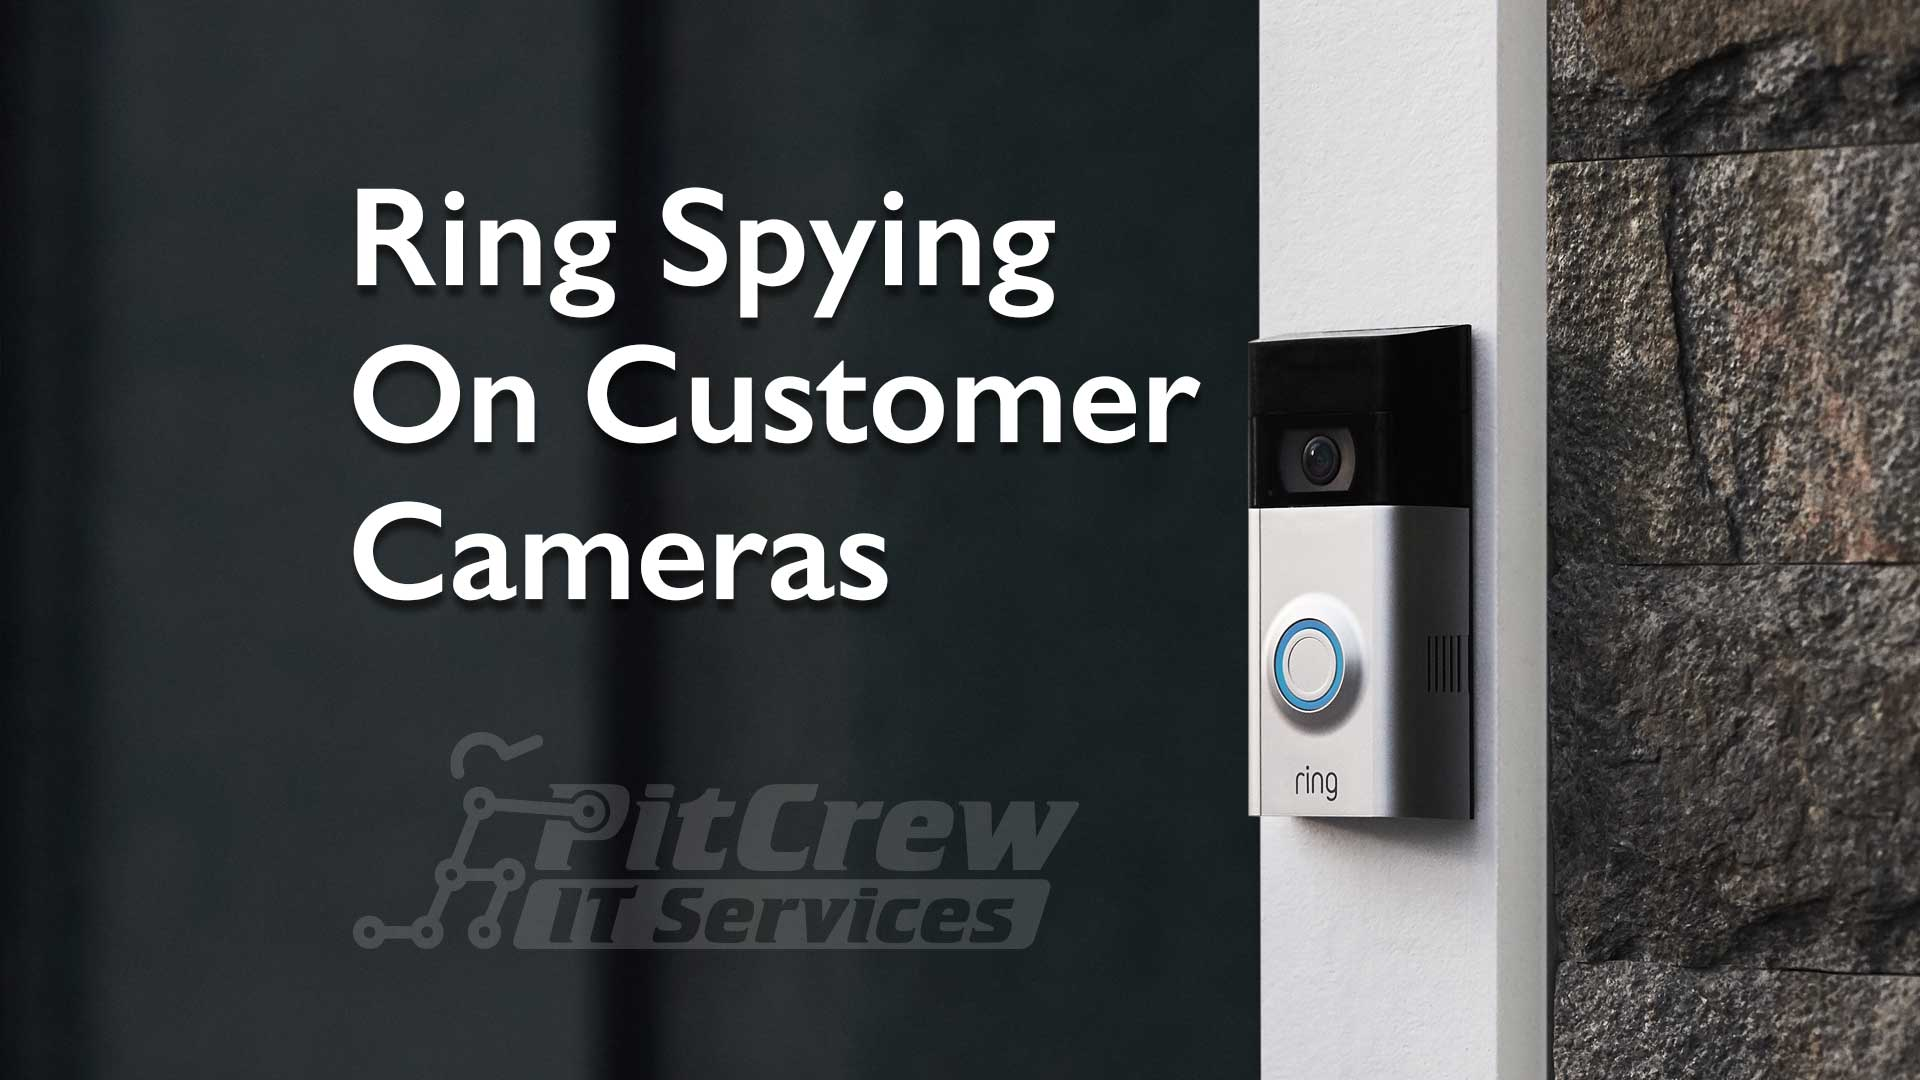 Ring Spying On Customer Cameras